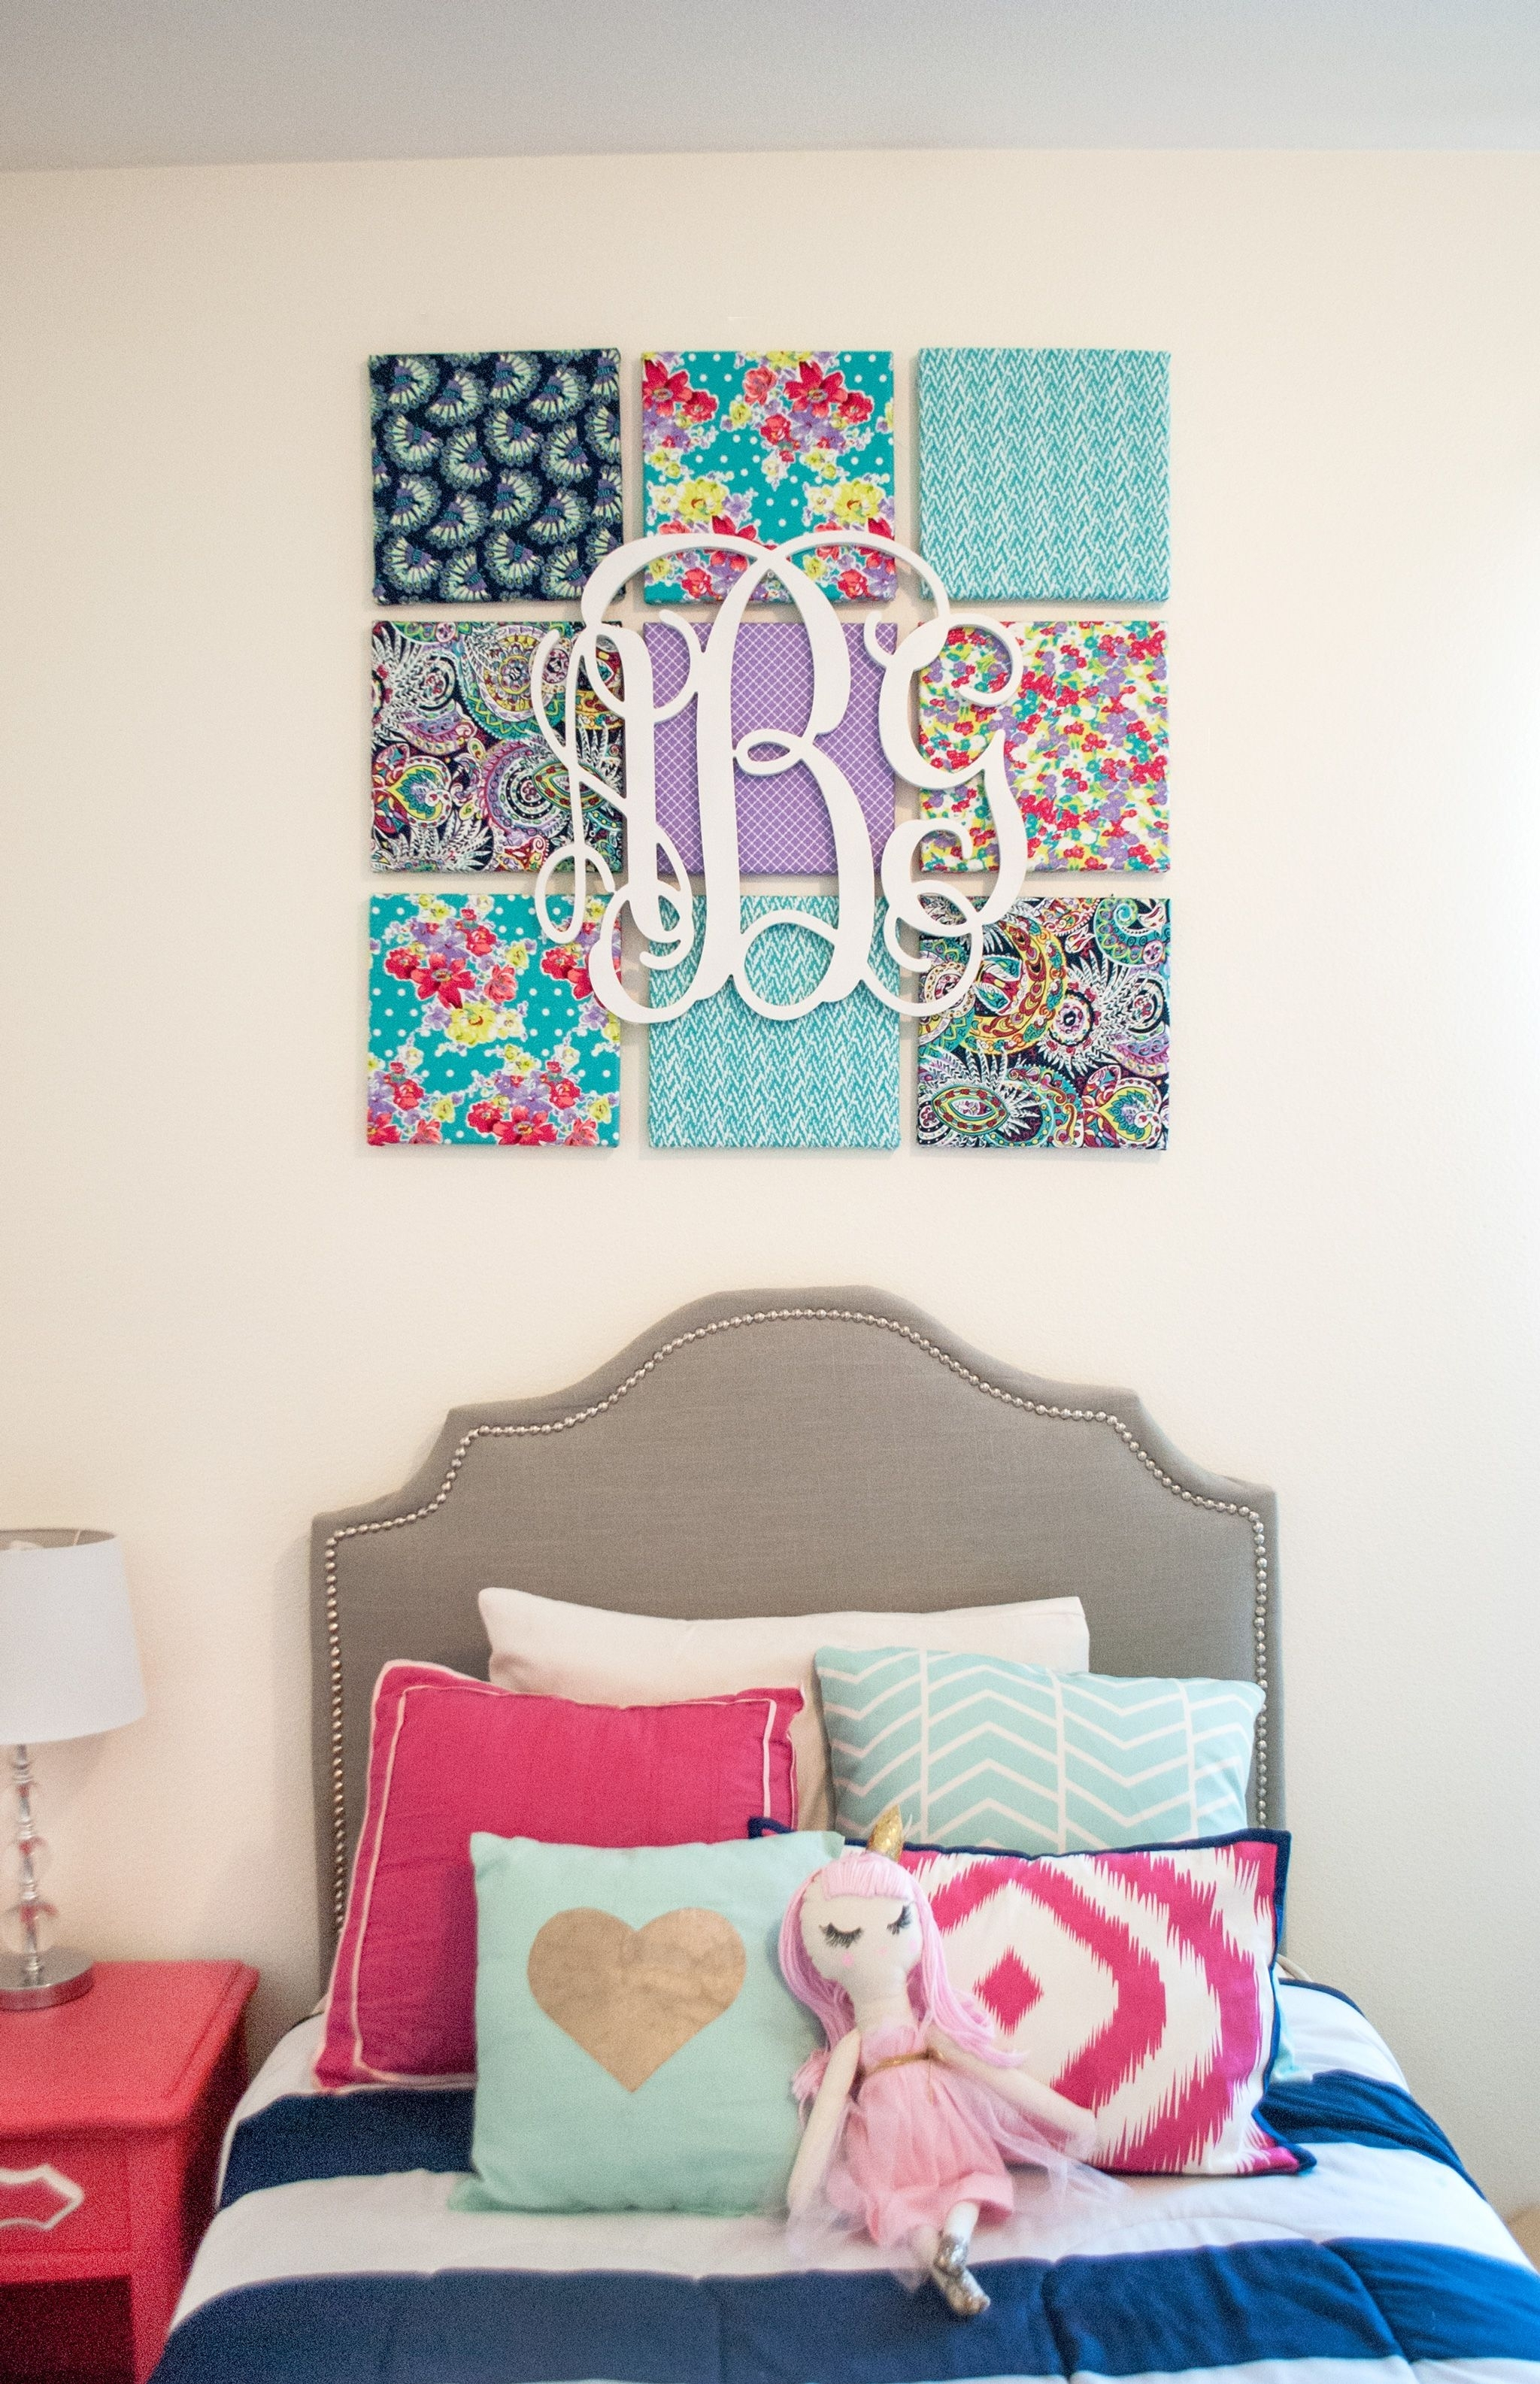 Diy Fabric Wall Art | Monogram Wall, Kids Rooms And Monograms Throughout Most Recent Diy Fabric Covered Wall Art (Gallery 1 of 15)